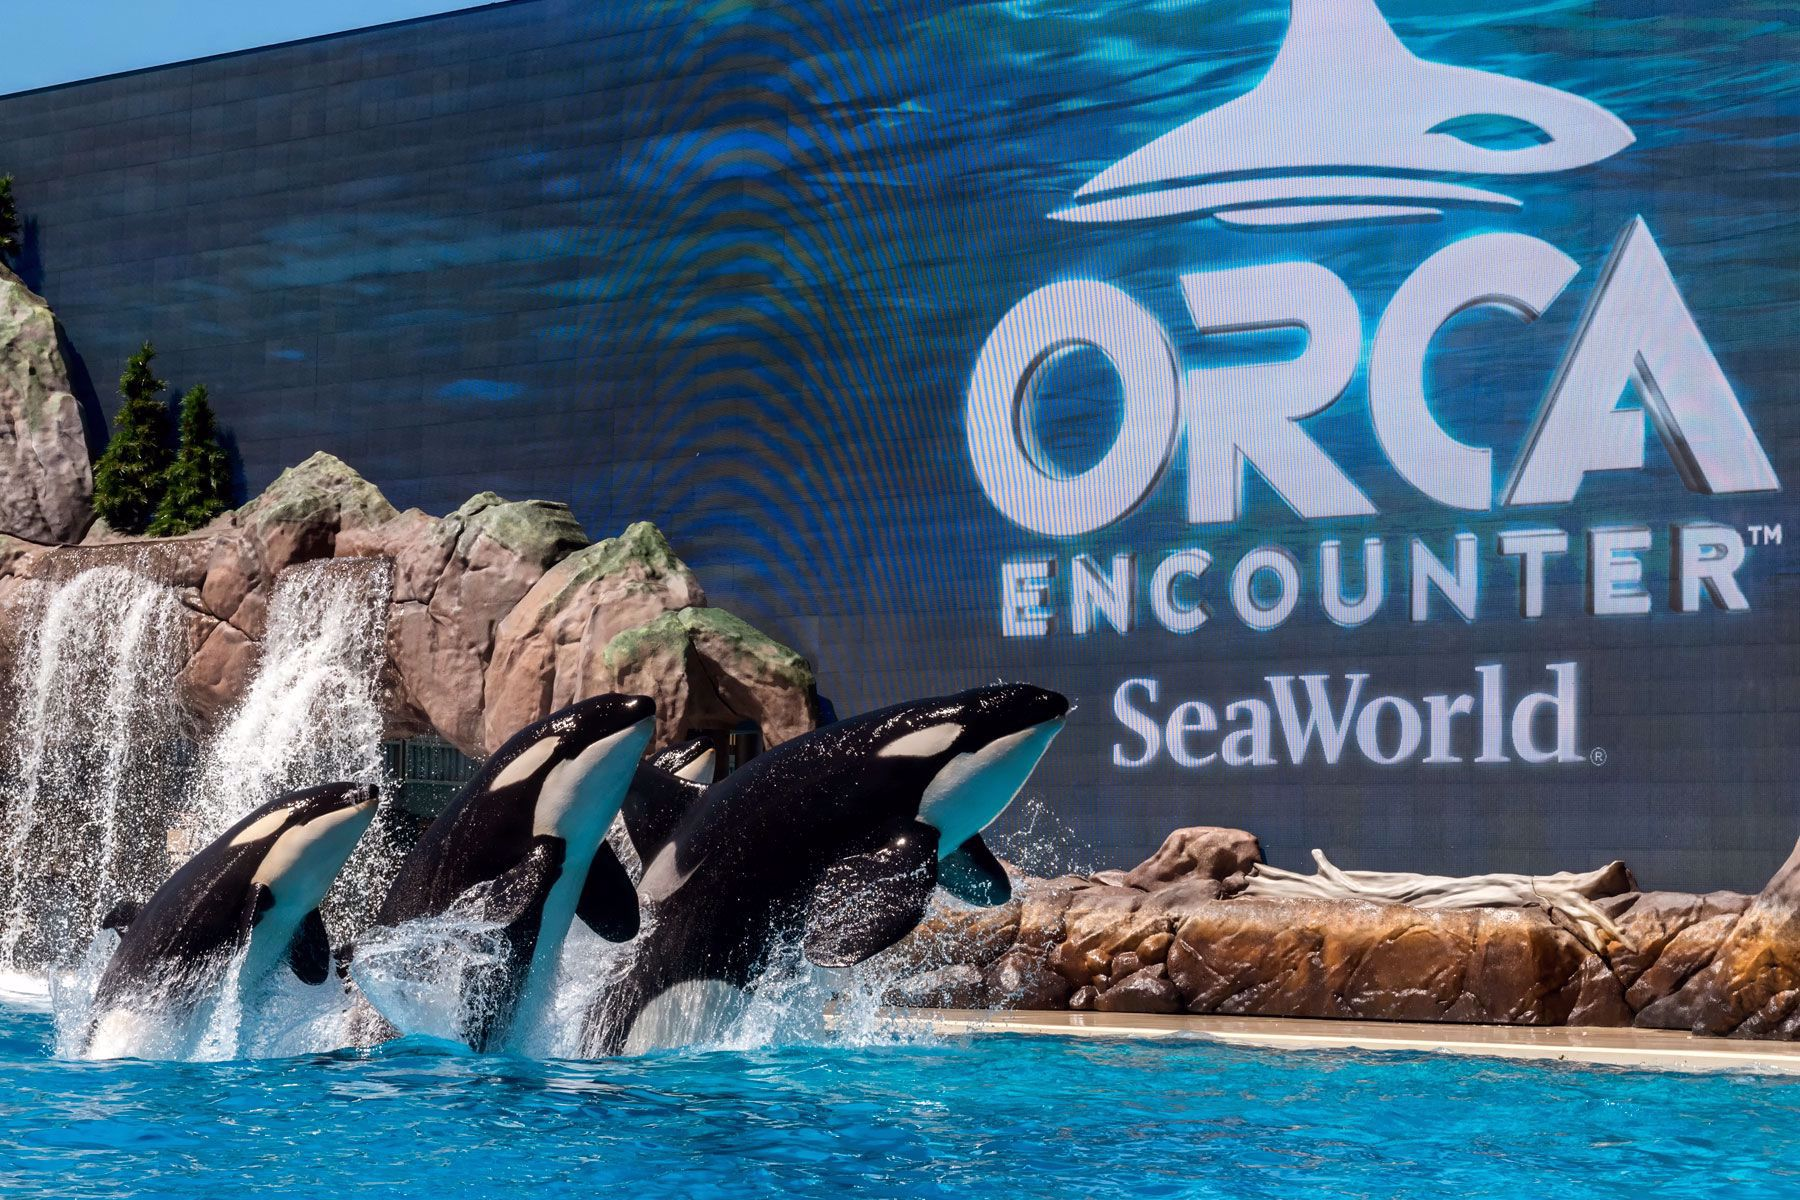 Orca Encounter